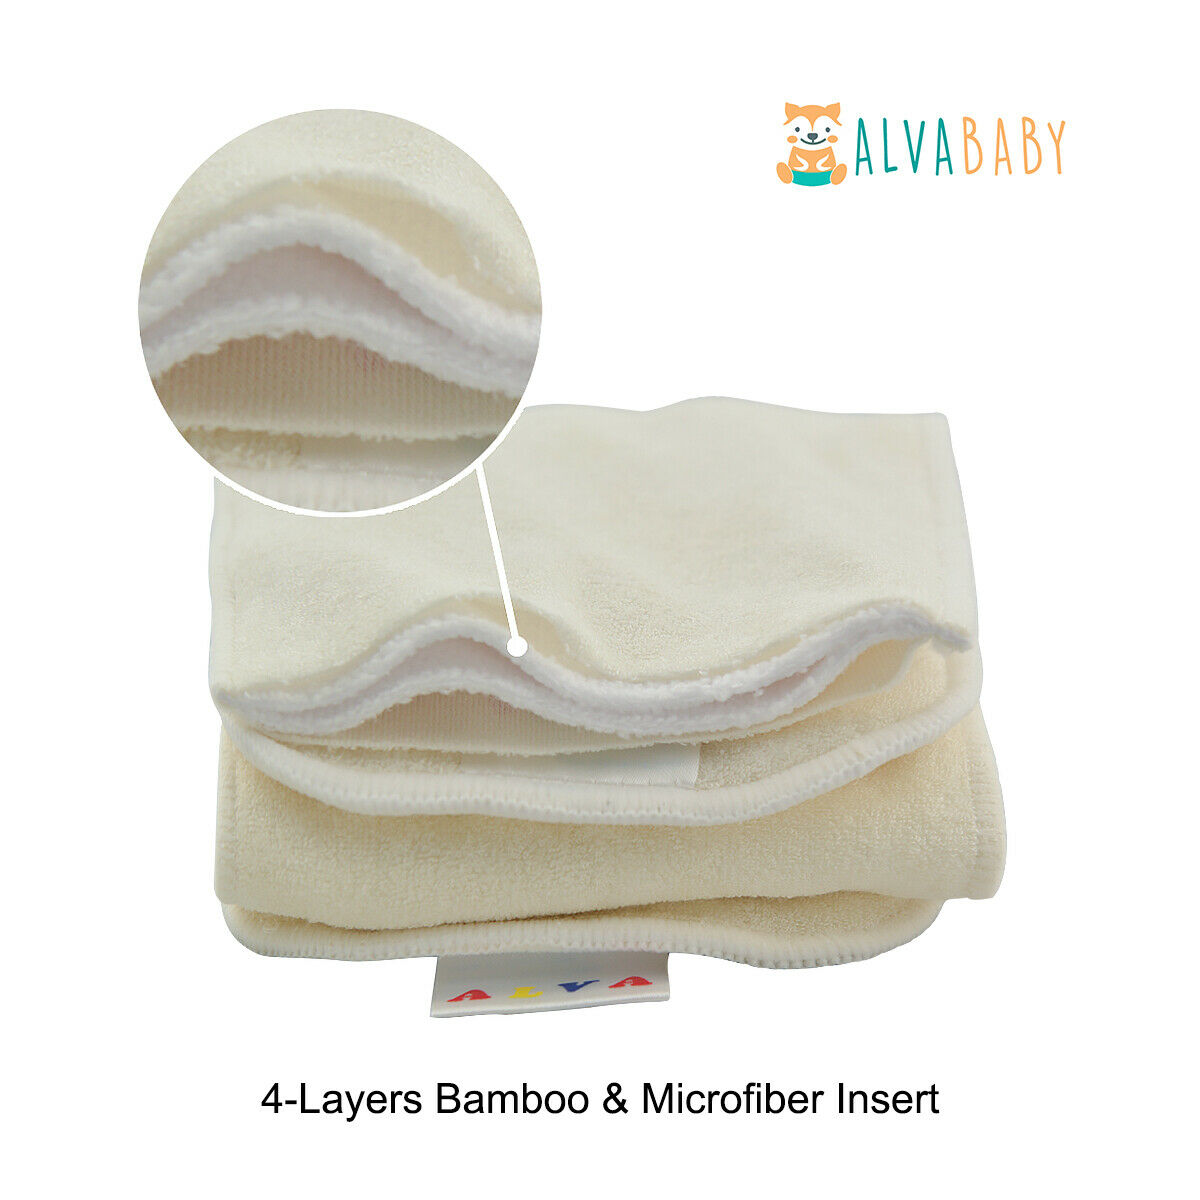 ALVABABY Cloth Diapers One Size Reusable Washable Pocket Nappy + Insert U Pick With 1 4layers Bamboo Insert